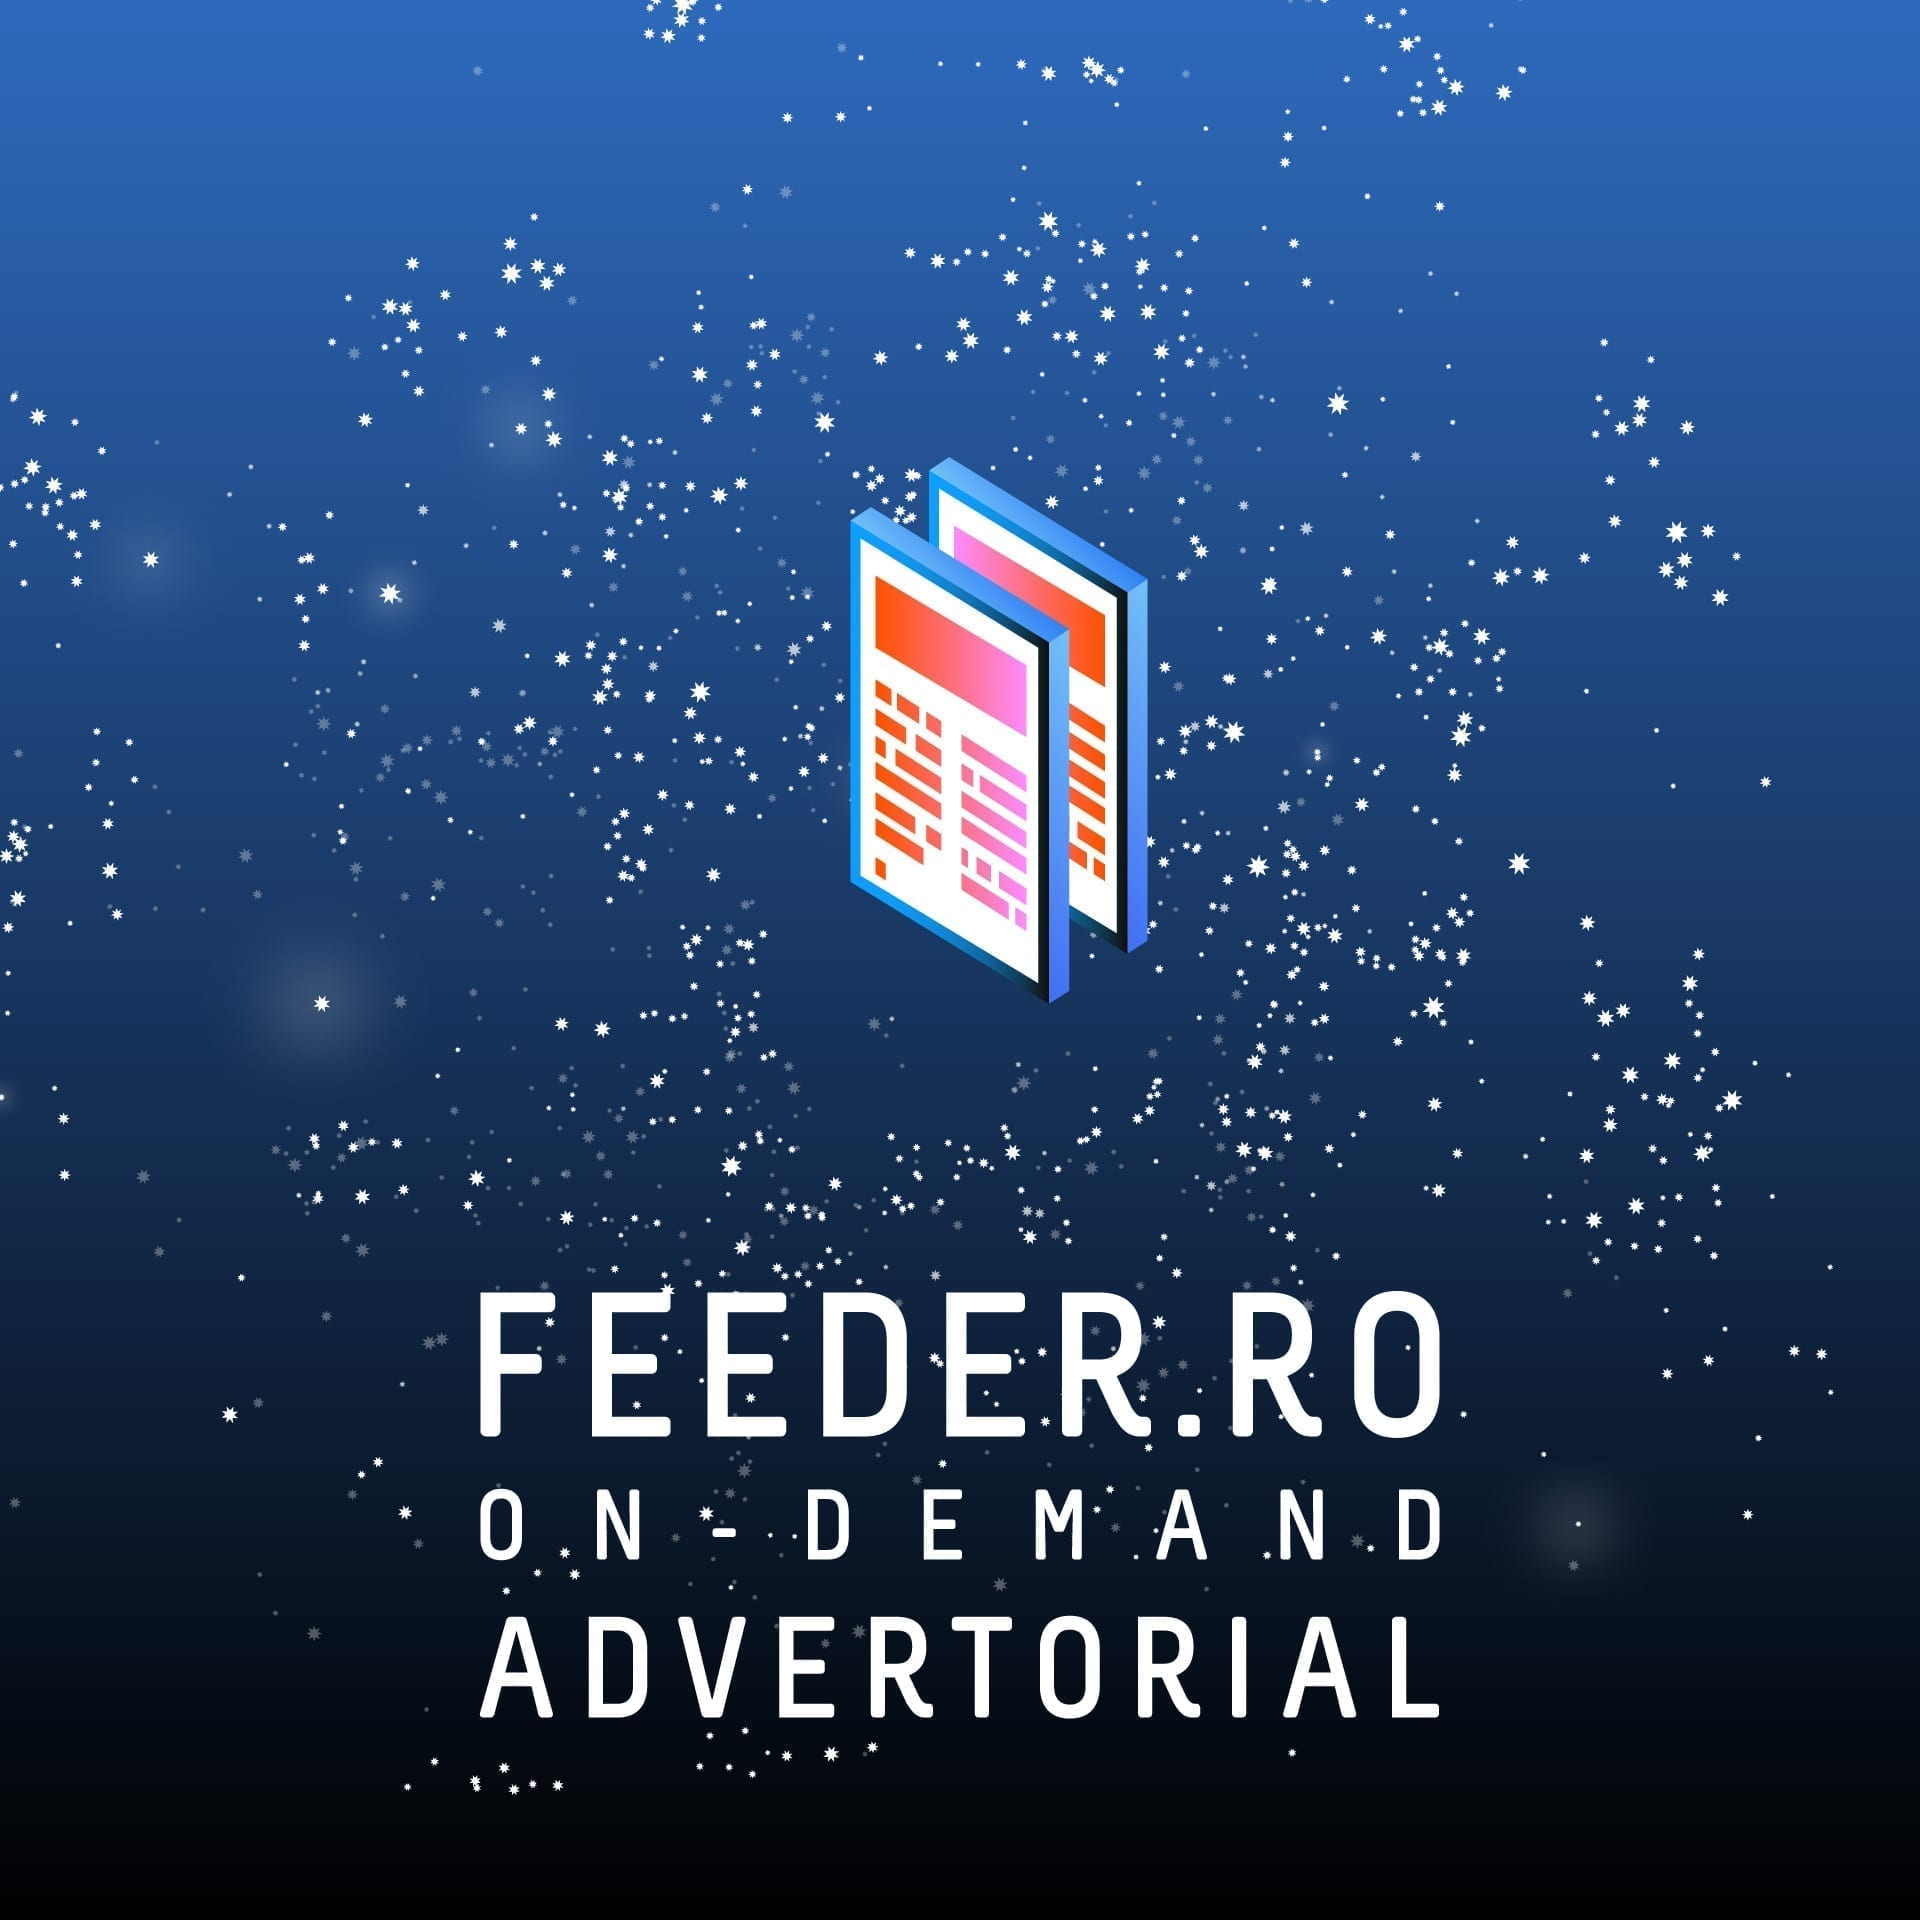 On-demand advertorial written by © feeder.ro